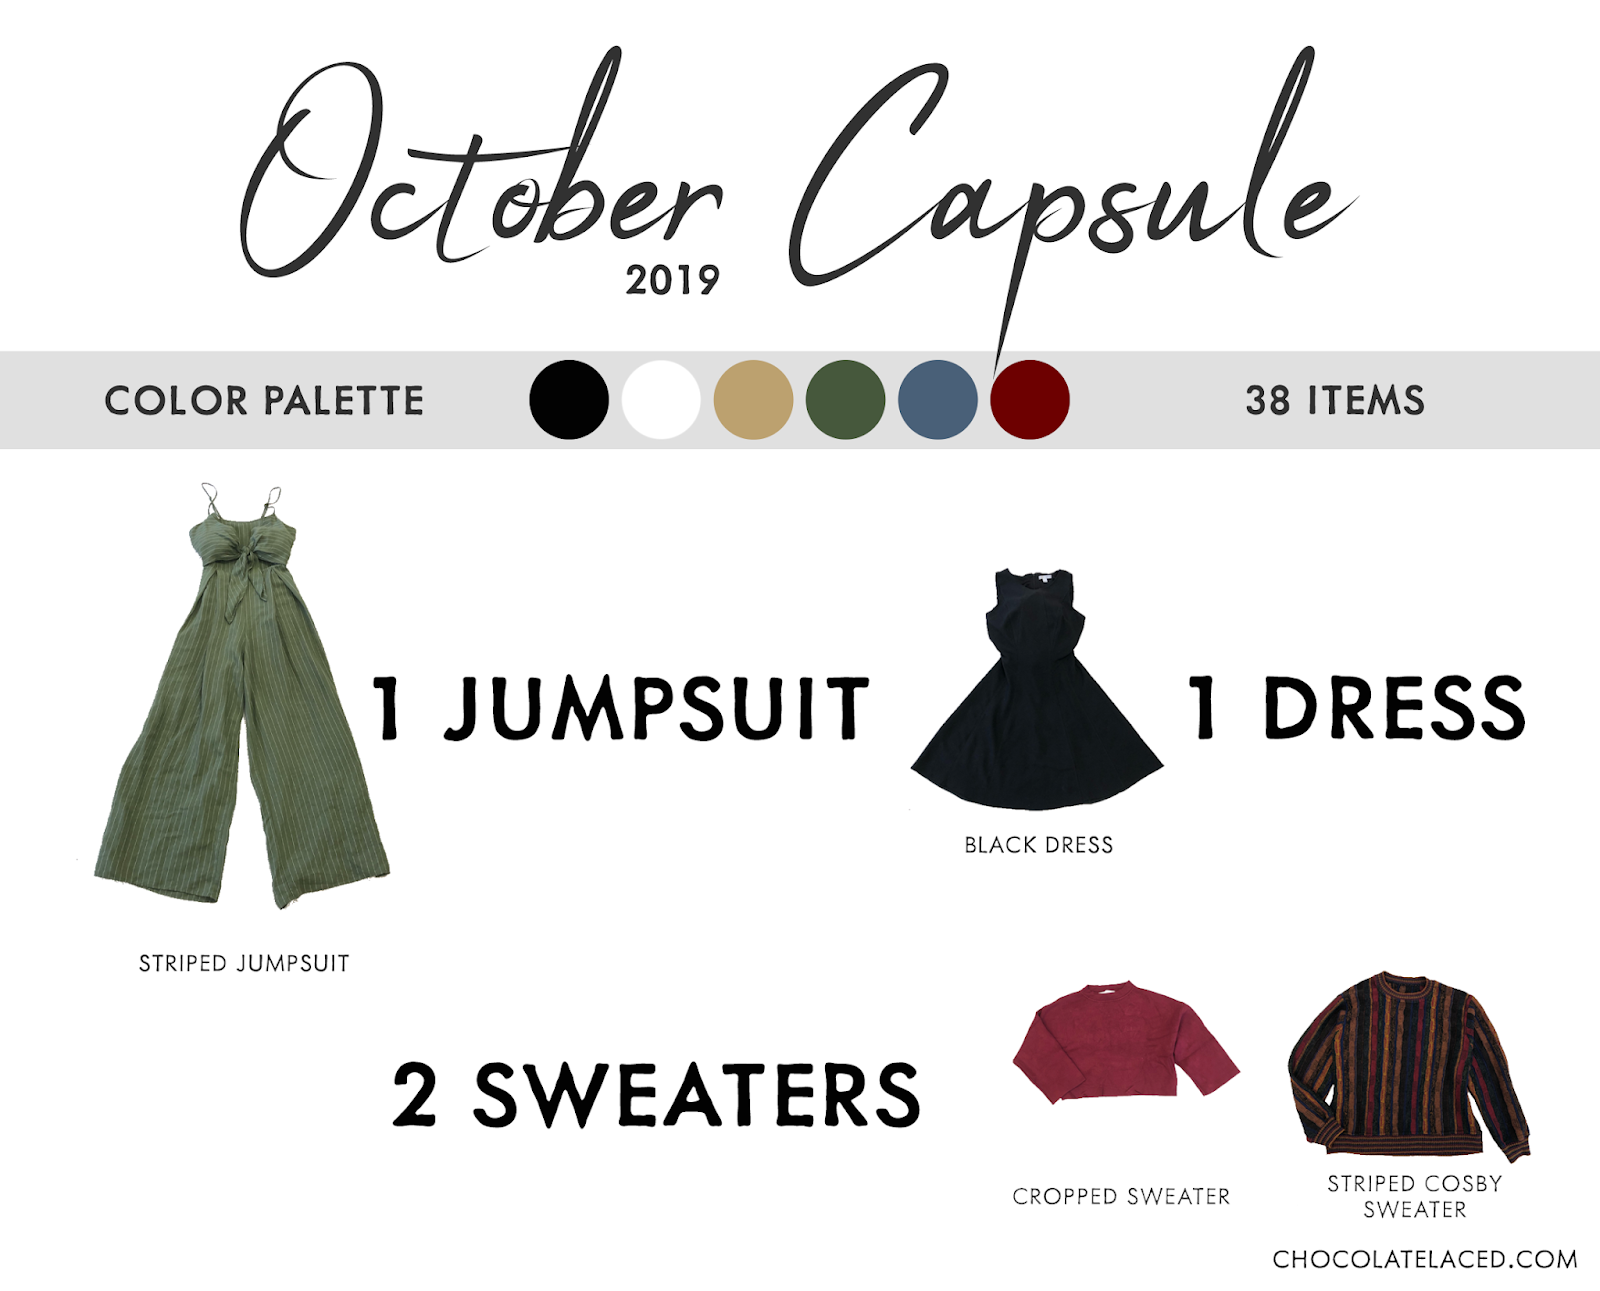 October capsule closet dress jumpsuit and sweaters